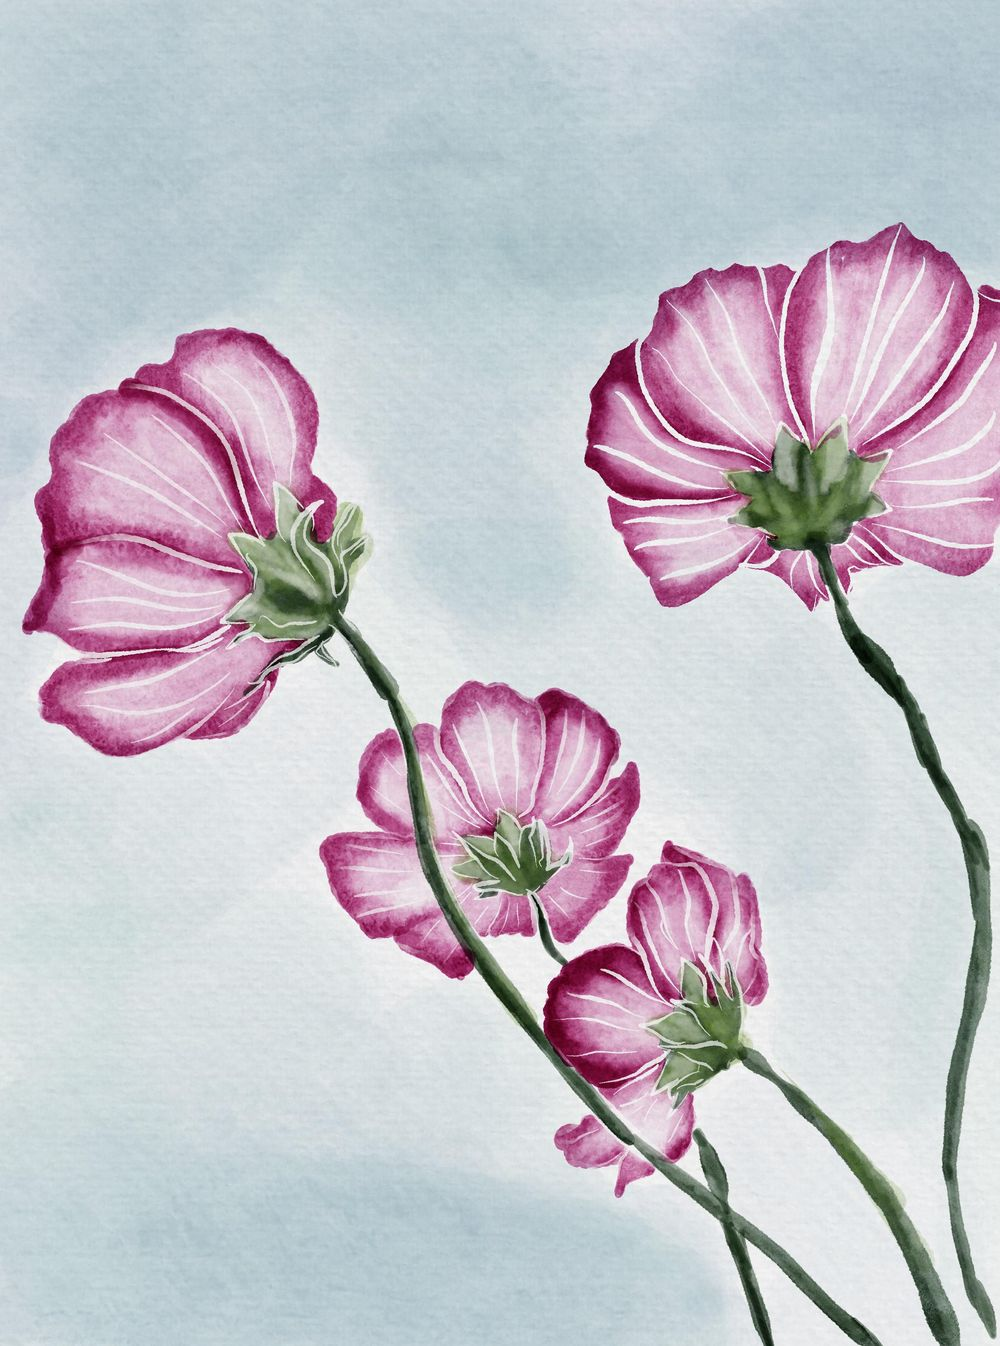 Flowers and watercolours - image 2 - student project